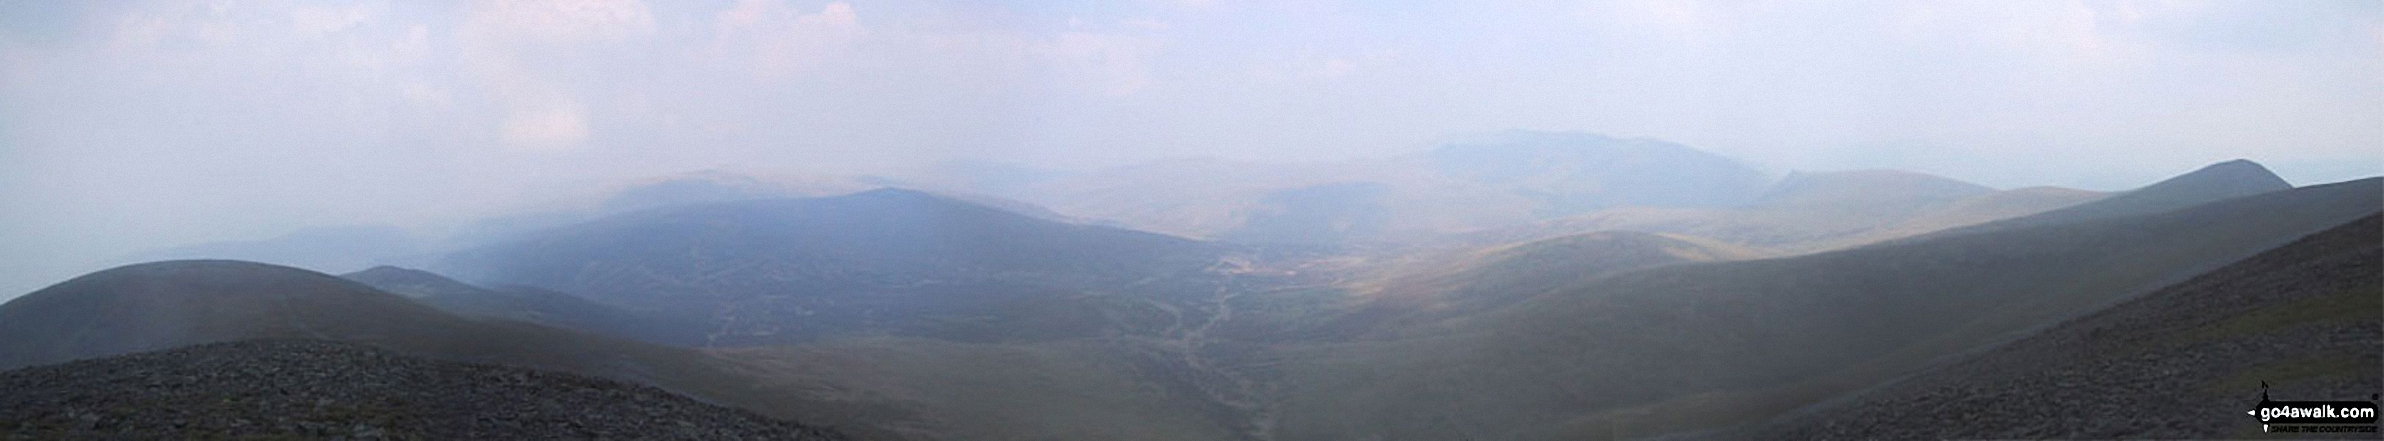 *Bakestall, Great Calva, Skiddaw House, Blencathra (Saddleback) and Lonscale Fell from Skiddaw